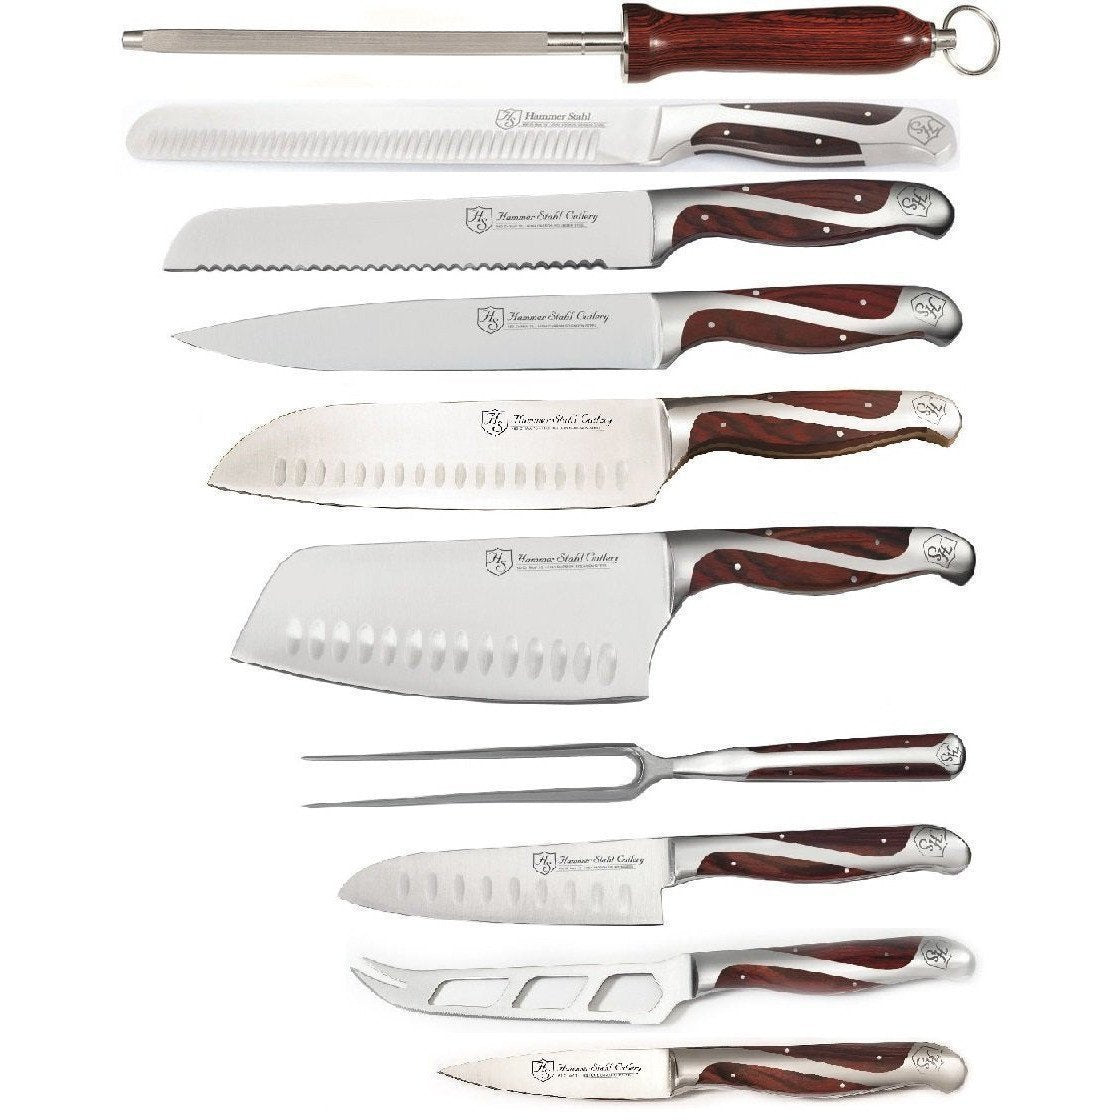 Hammer Stahl - 21 Piece Classic Collection Knives and Block Set